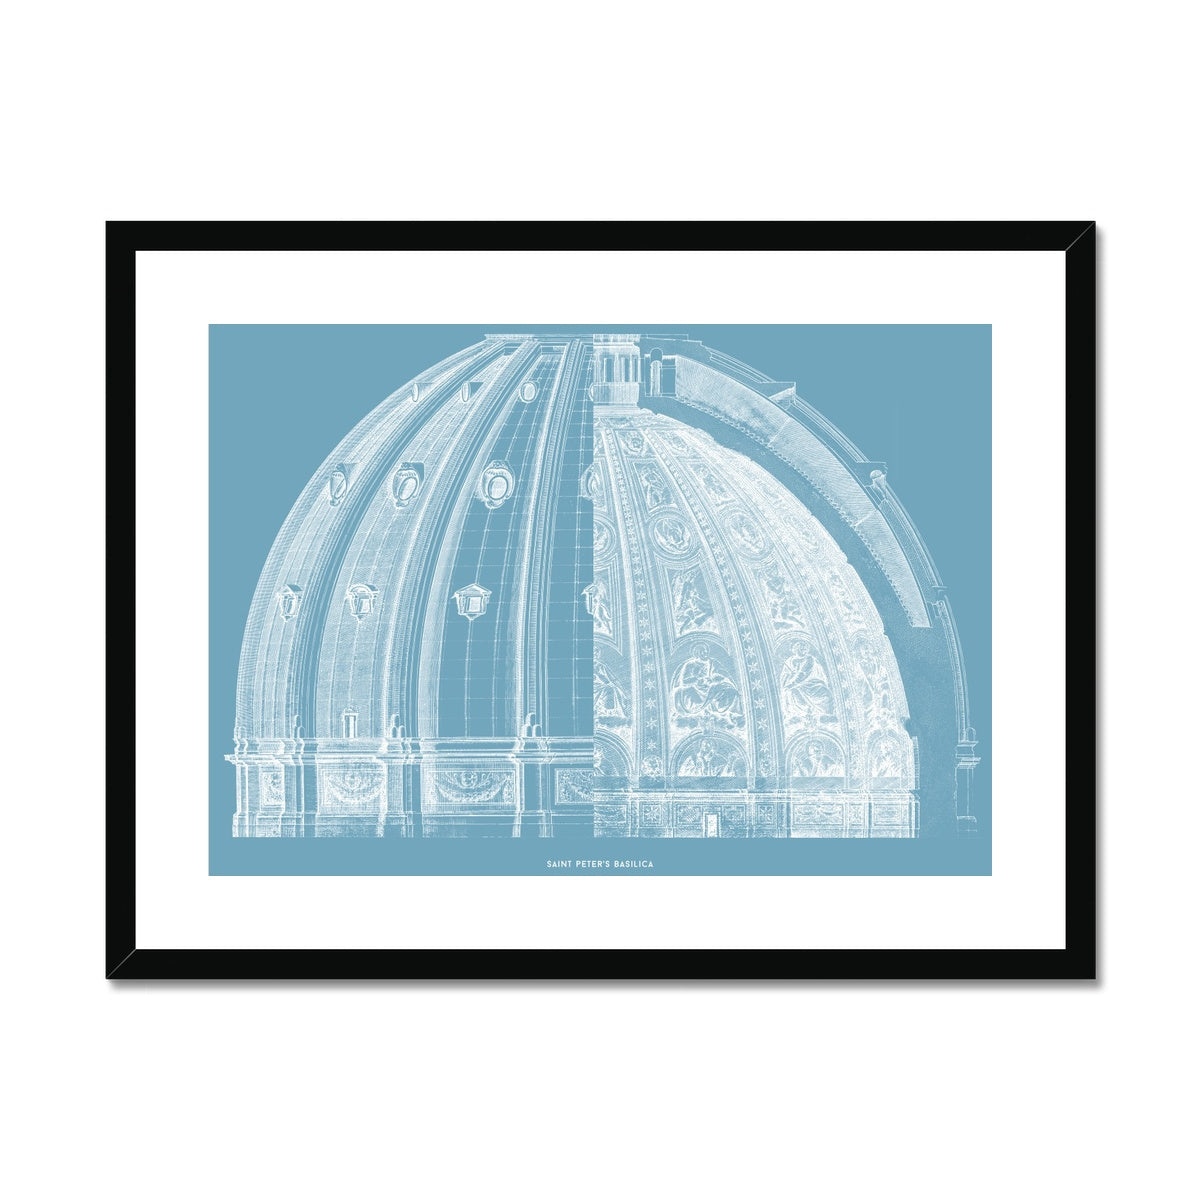 Saint Peter's Basilica - Dome Cross Section - Blue -  Framed & Mounted Print